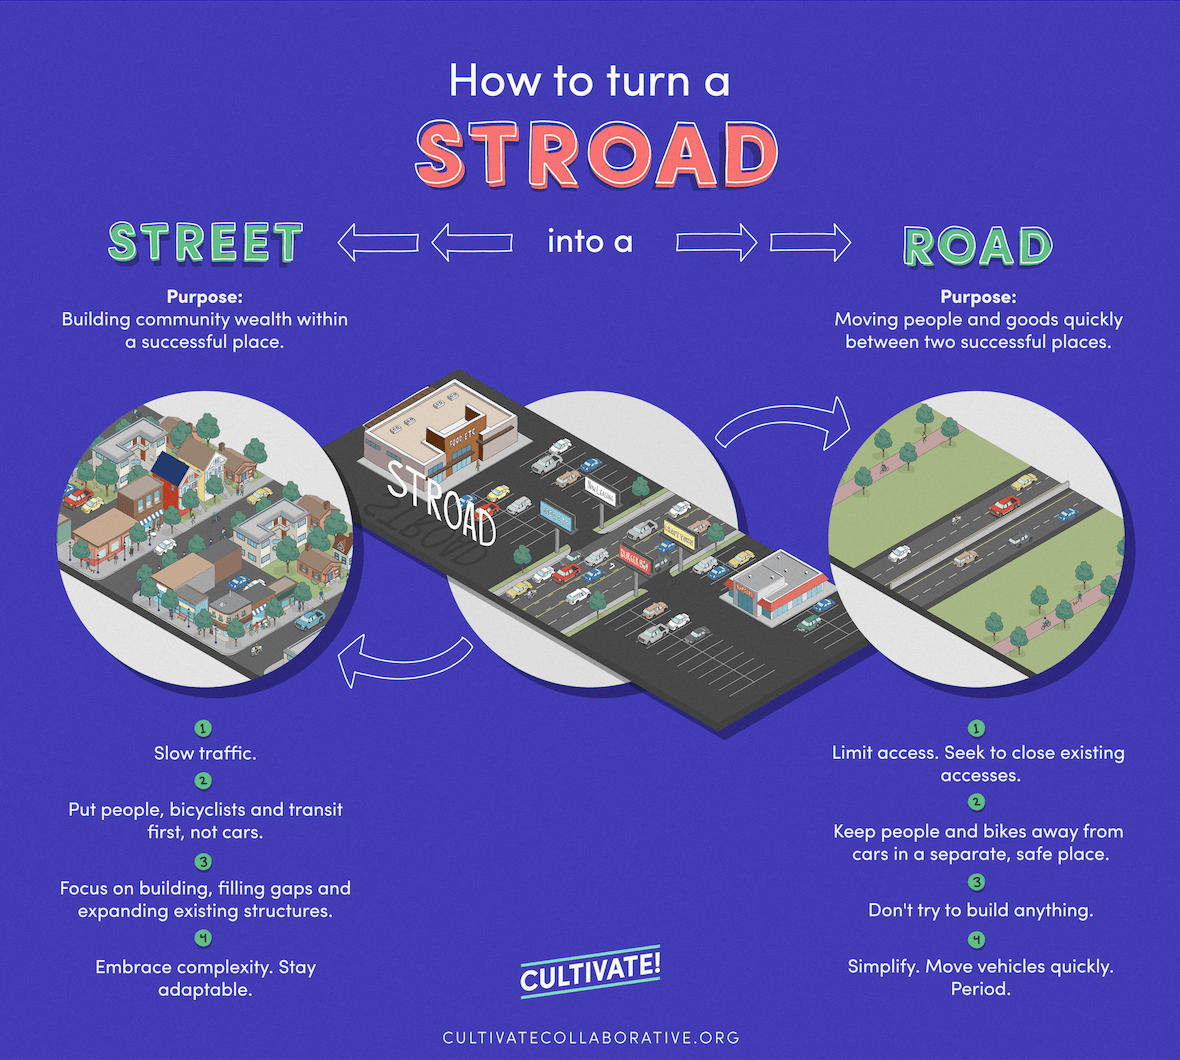 A stroad is a street/road hybrid that fails on all counts: it's unpleasant, dangerous, and ineffective at moving people. Click to view larger.